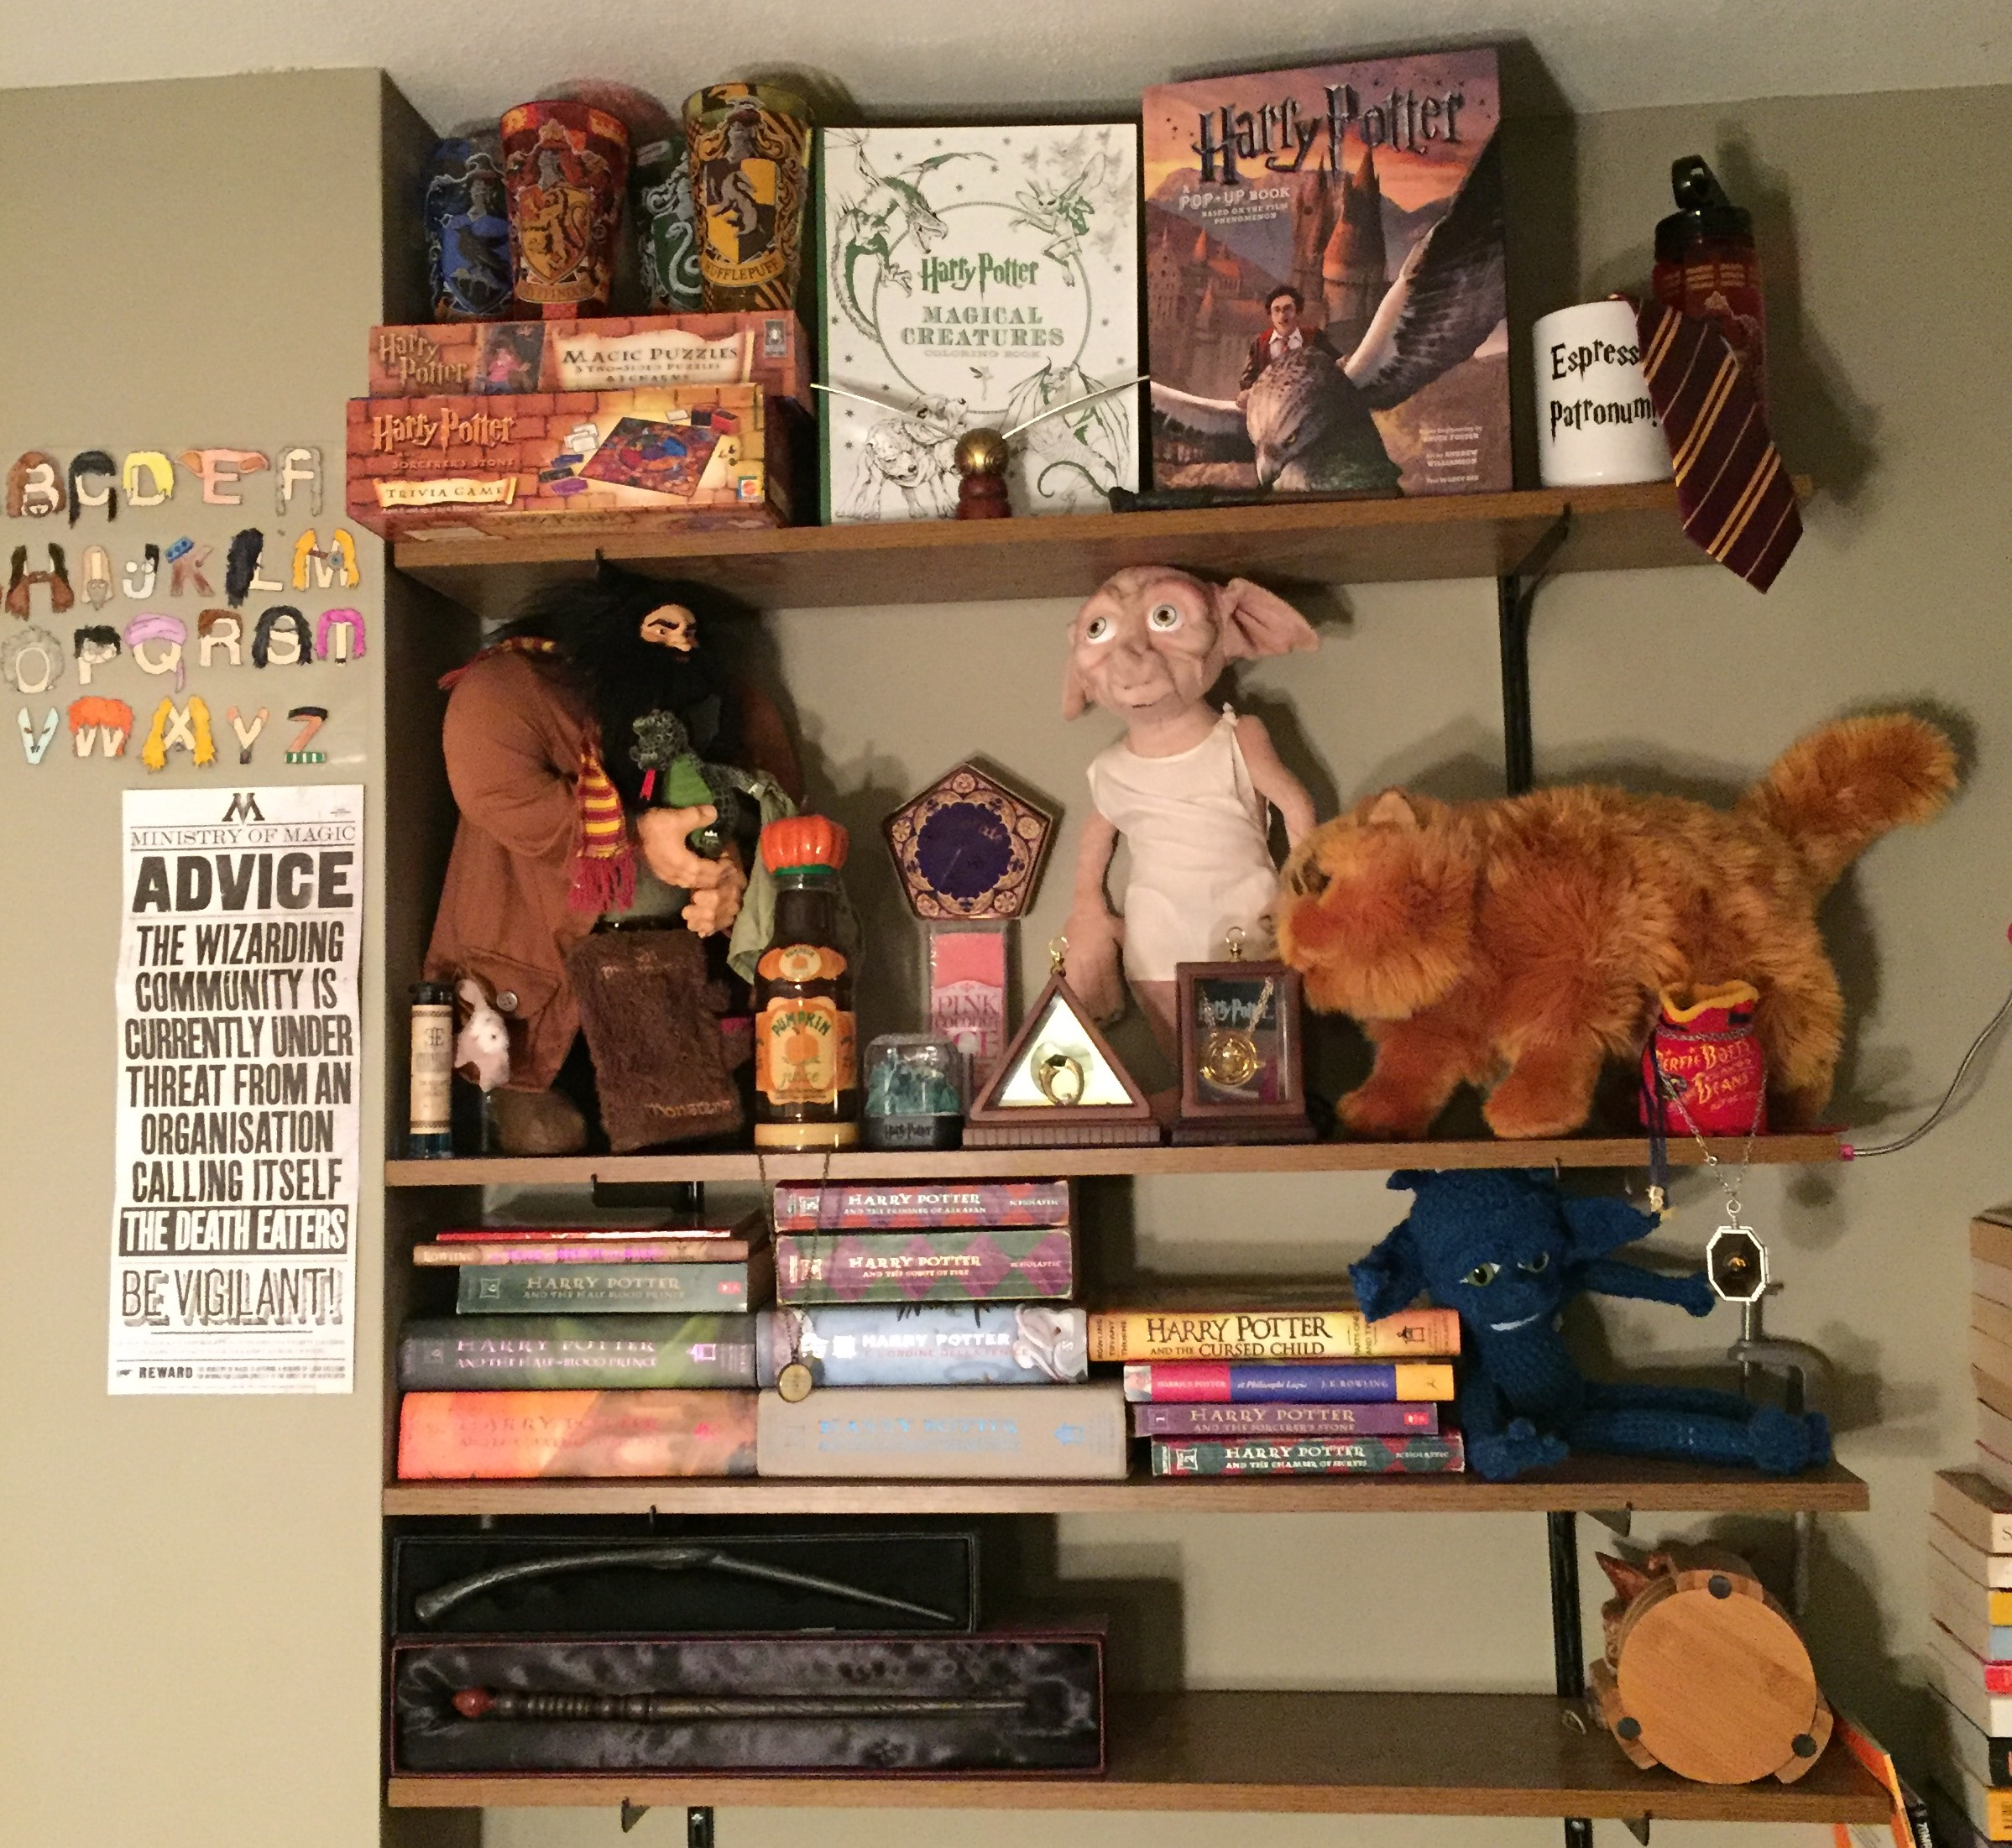 Almost Missed My Cake Day! Check Out My Harry Potter Shelves